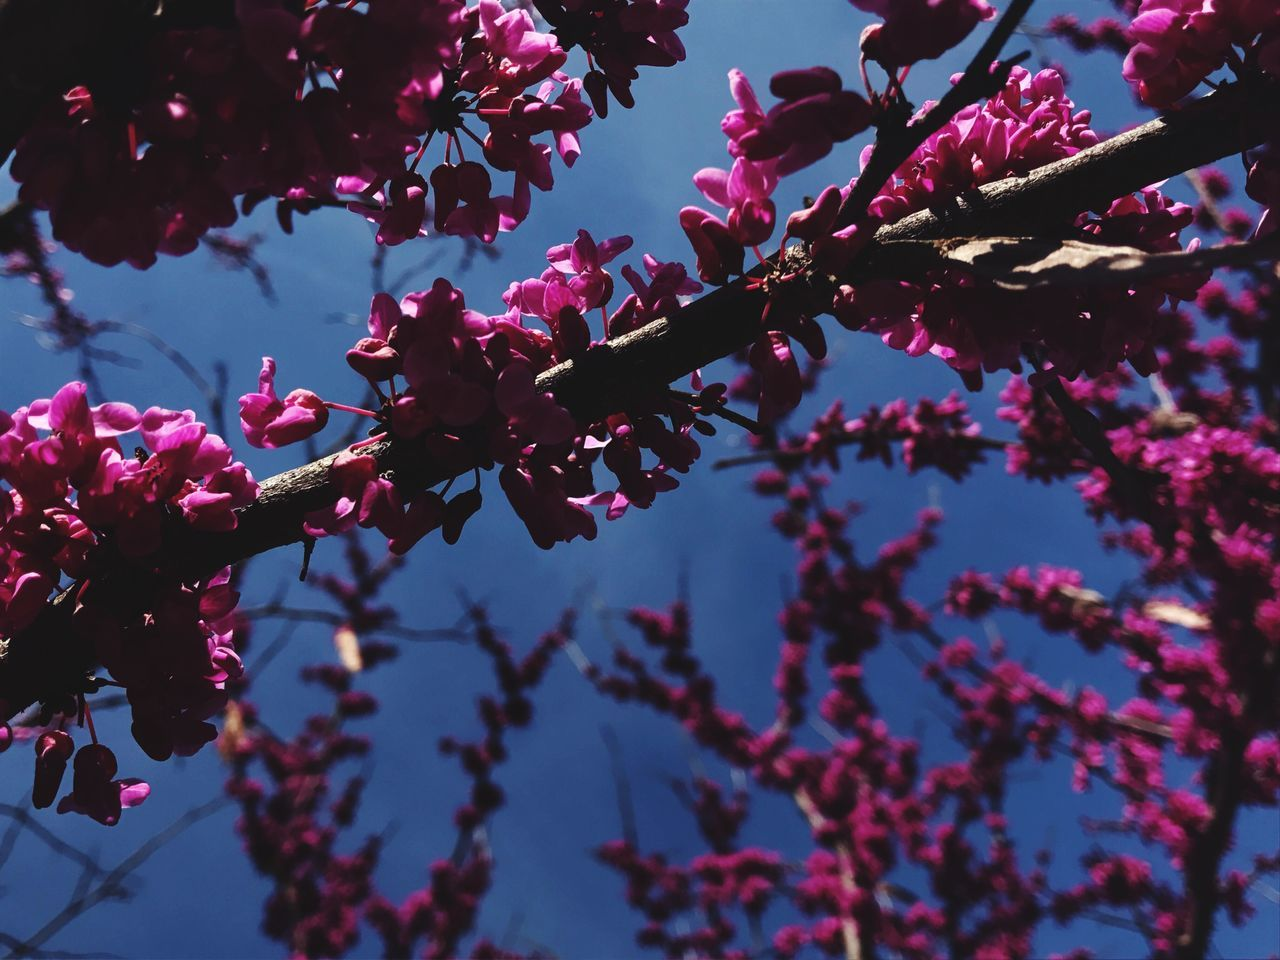 tree, growth, flower, beauty in nature, branch, nature, fragility, blossom, low angle view, springtime, freshness, botany, day, no people, petal, twig, outdoors, close-up, plum blossom, pink color, blooming, sky, flower head